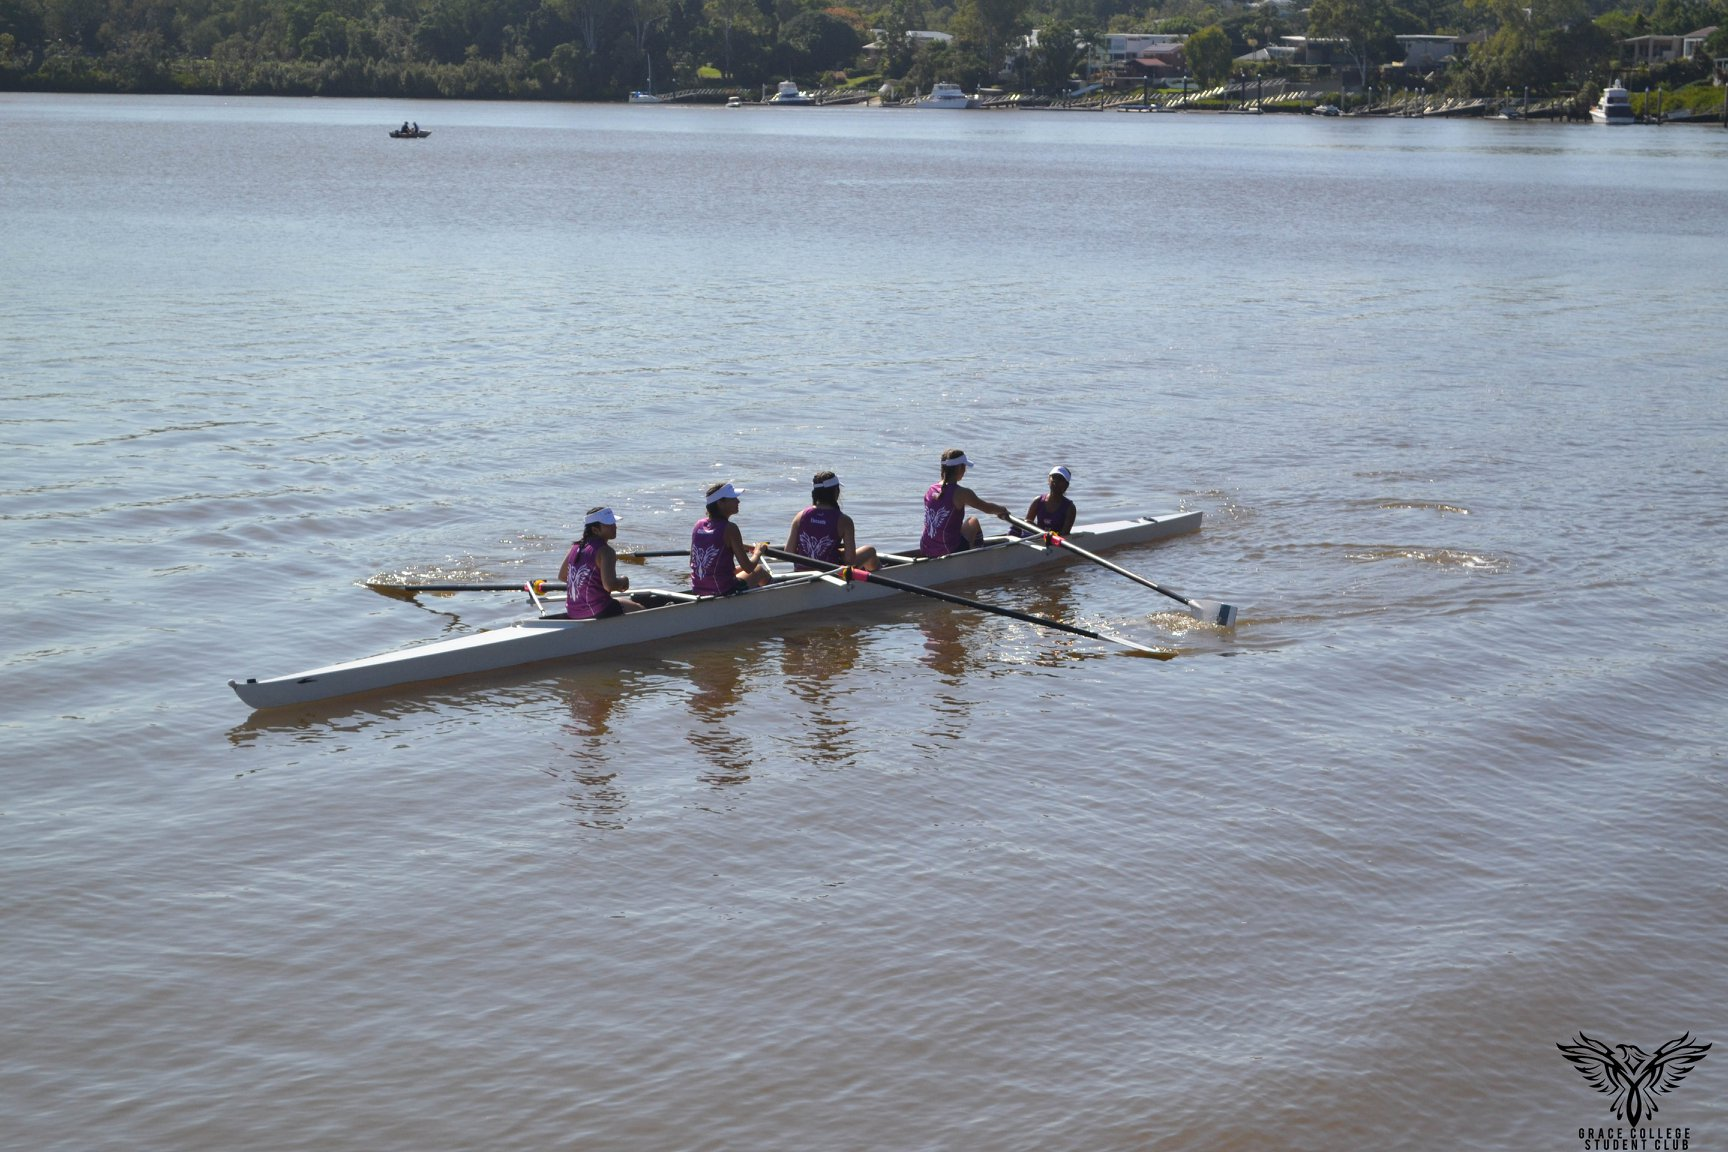 A rowing crew on the water